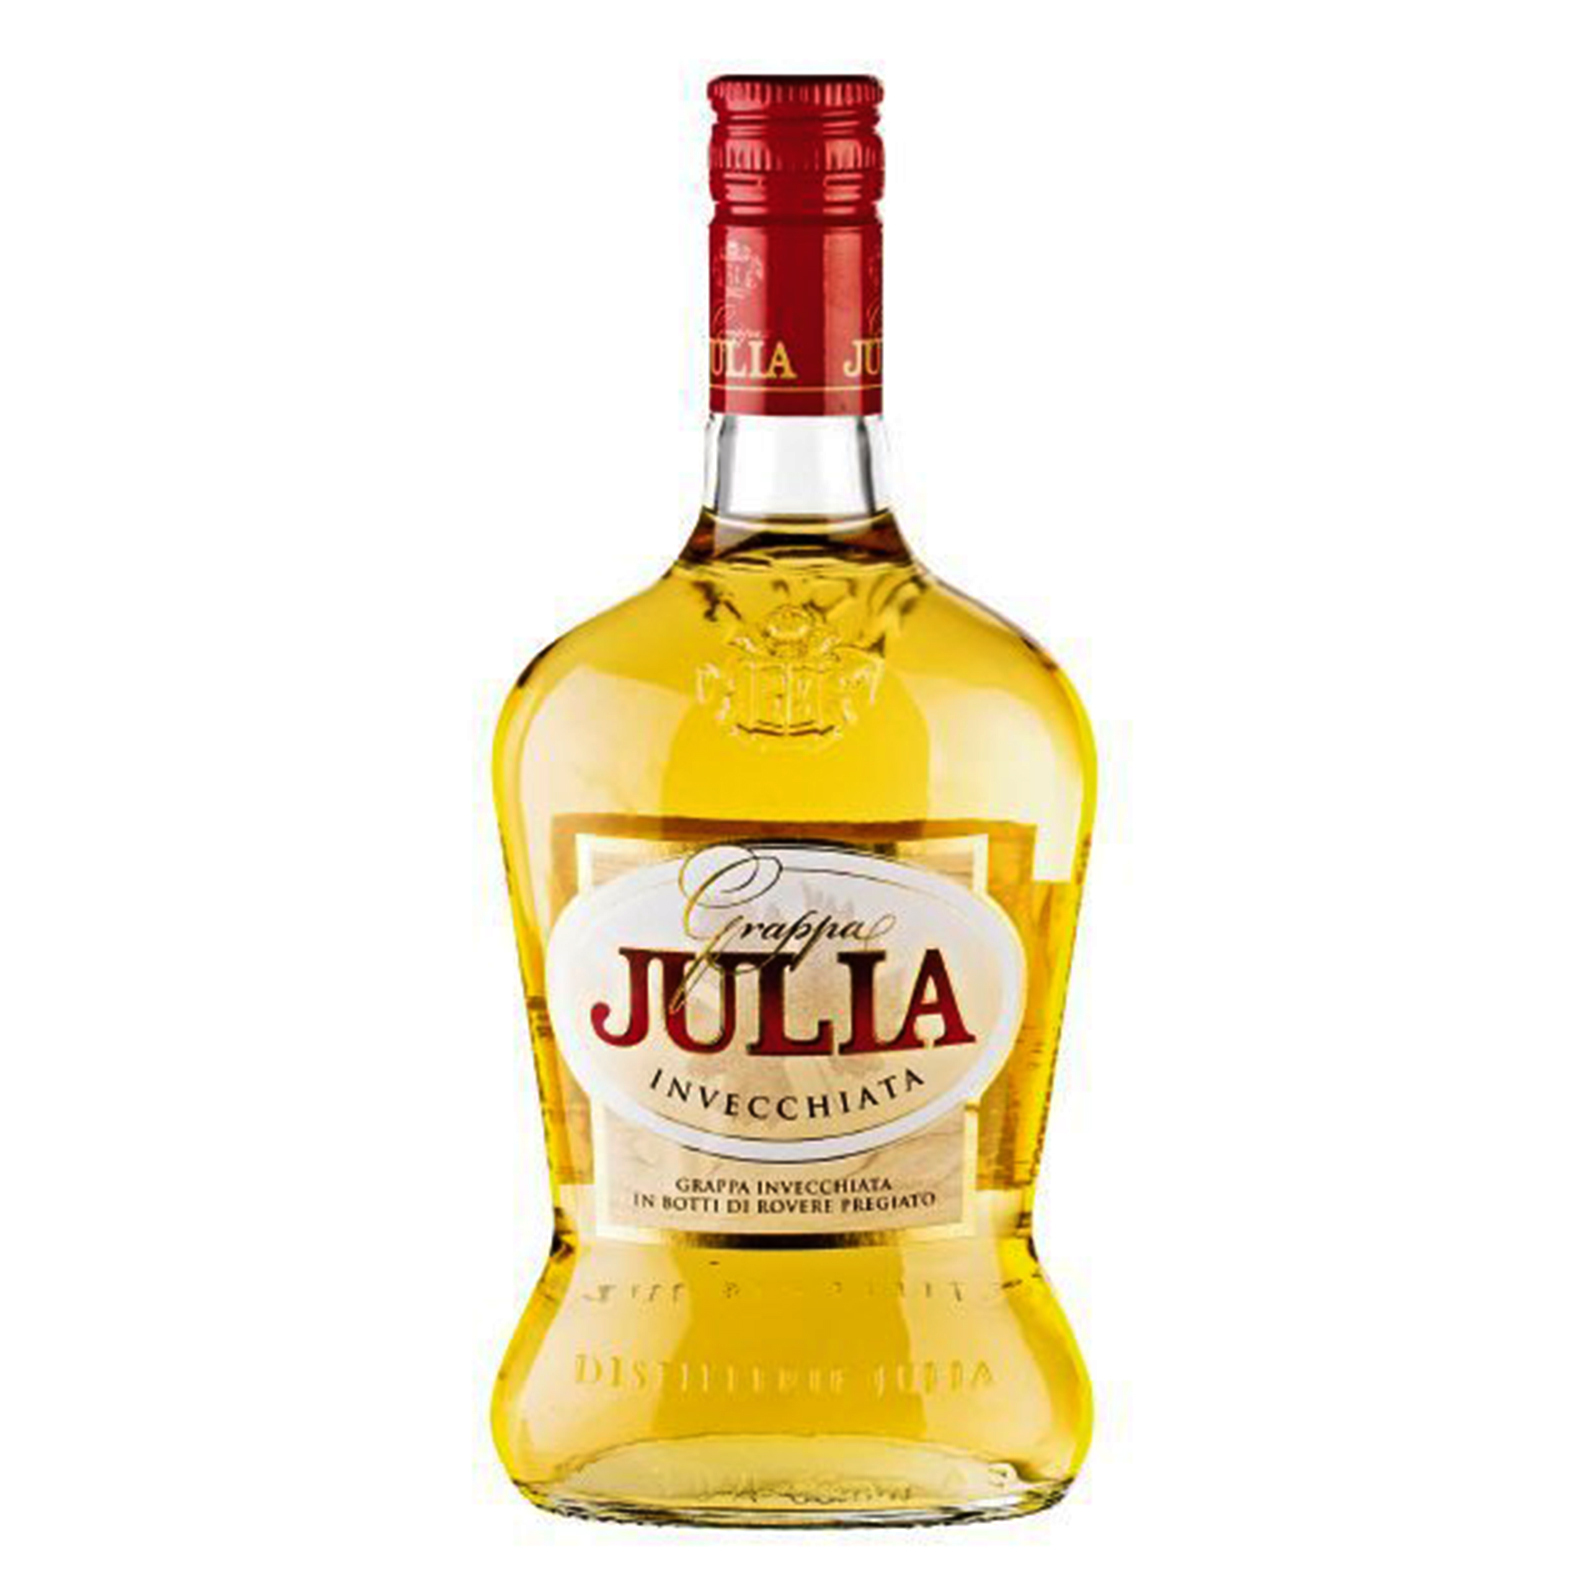 Grappa Julia - 0.70 - Grappa - Stock Srl